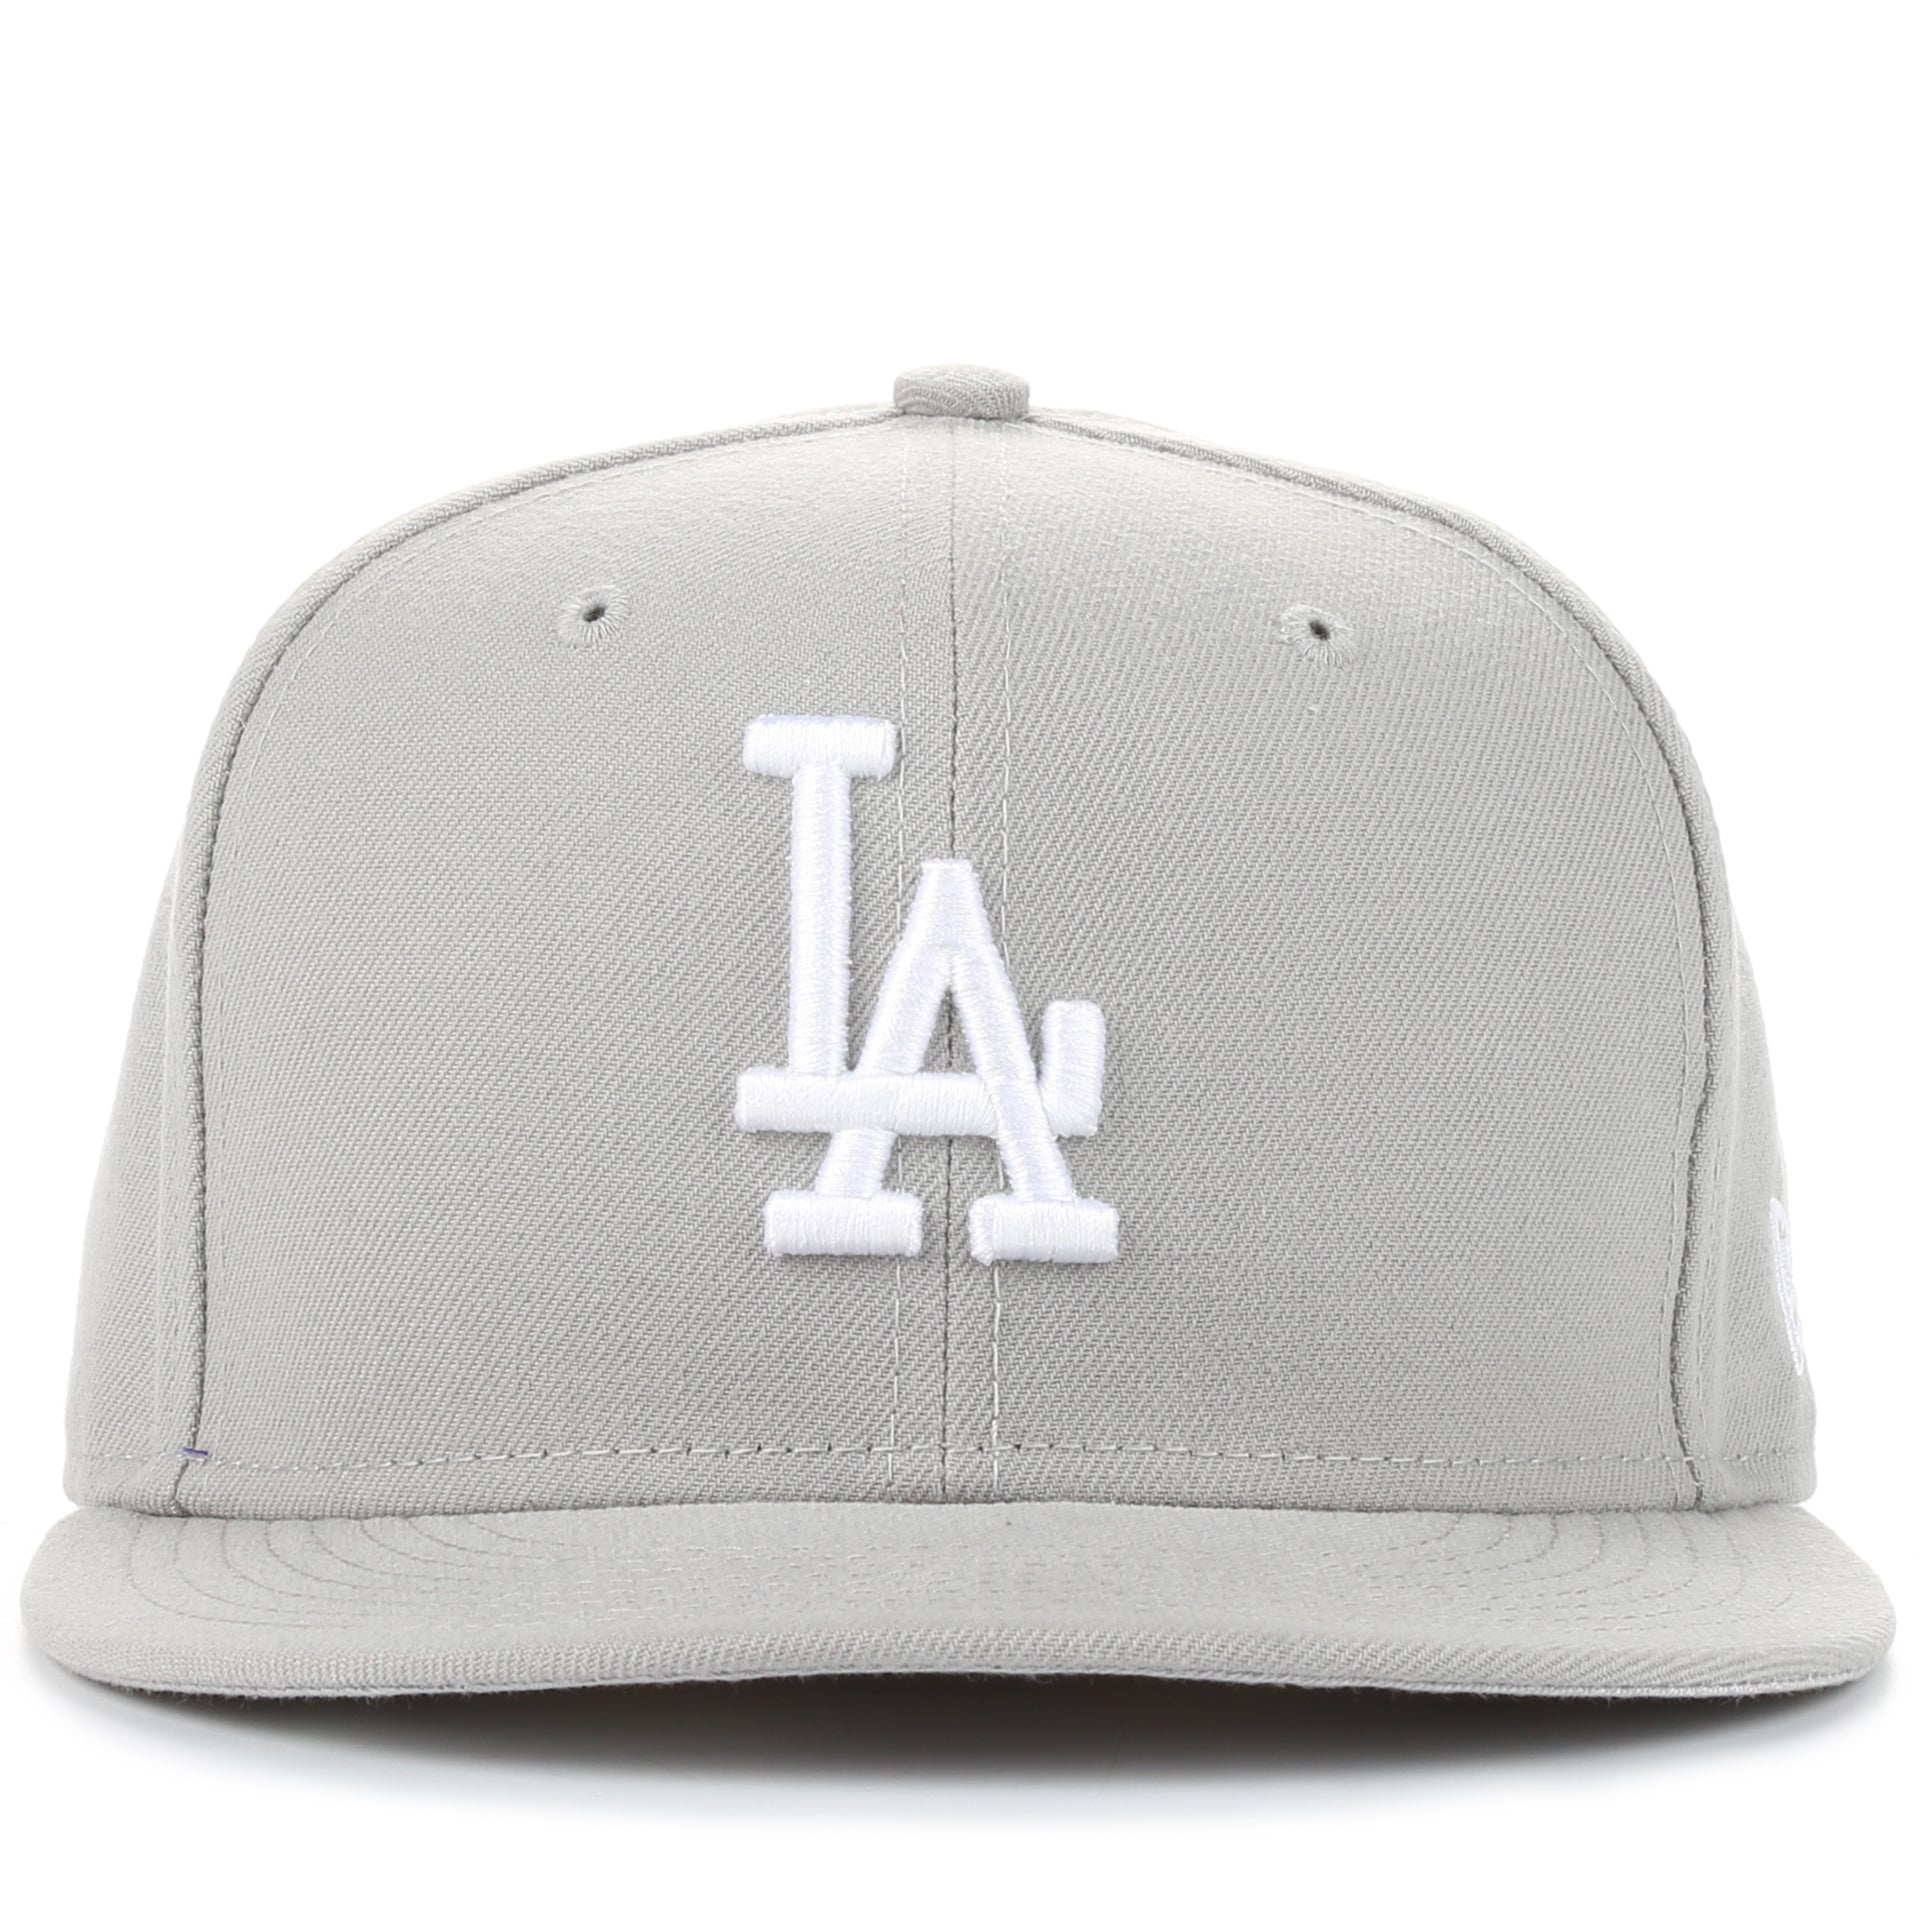 c9c9e76766e ... promo code for new era 59fifty mlb basic fitted cap los angeles dodgers  grey d2f34 83c7c